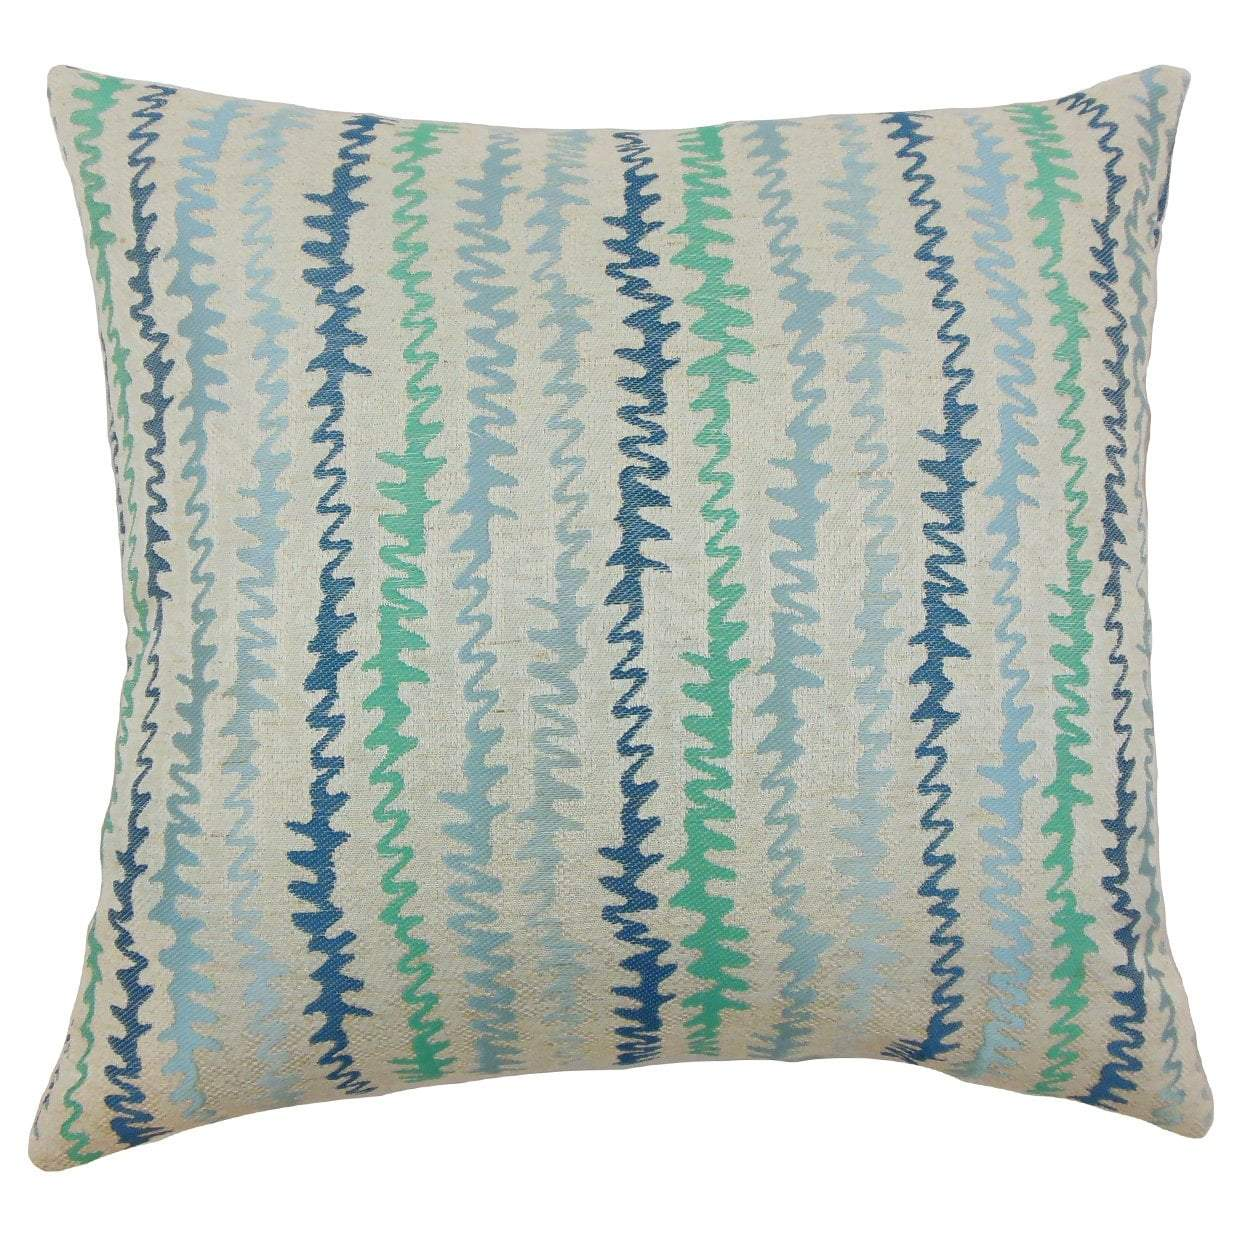 Wilkins Throw Pillow Cover